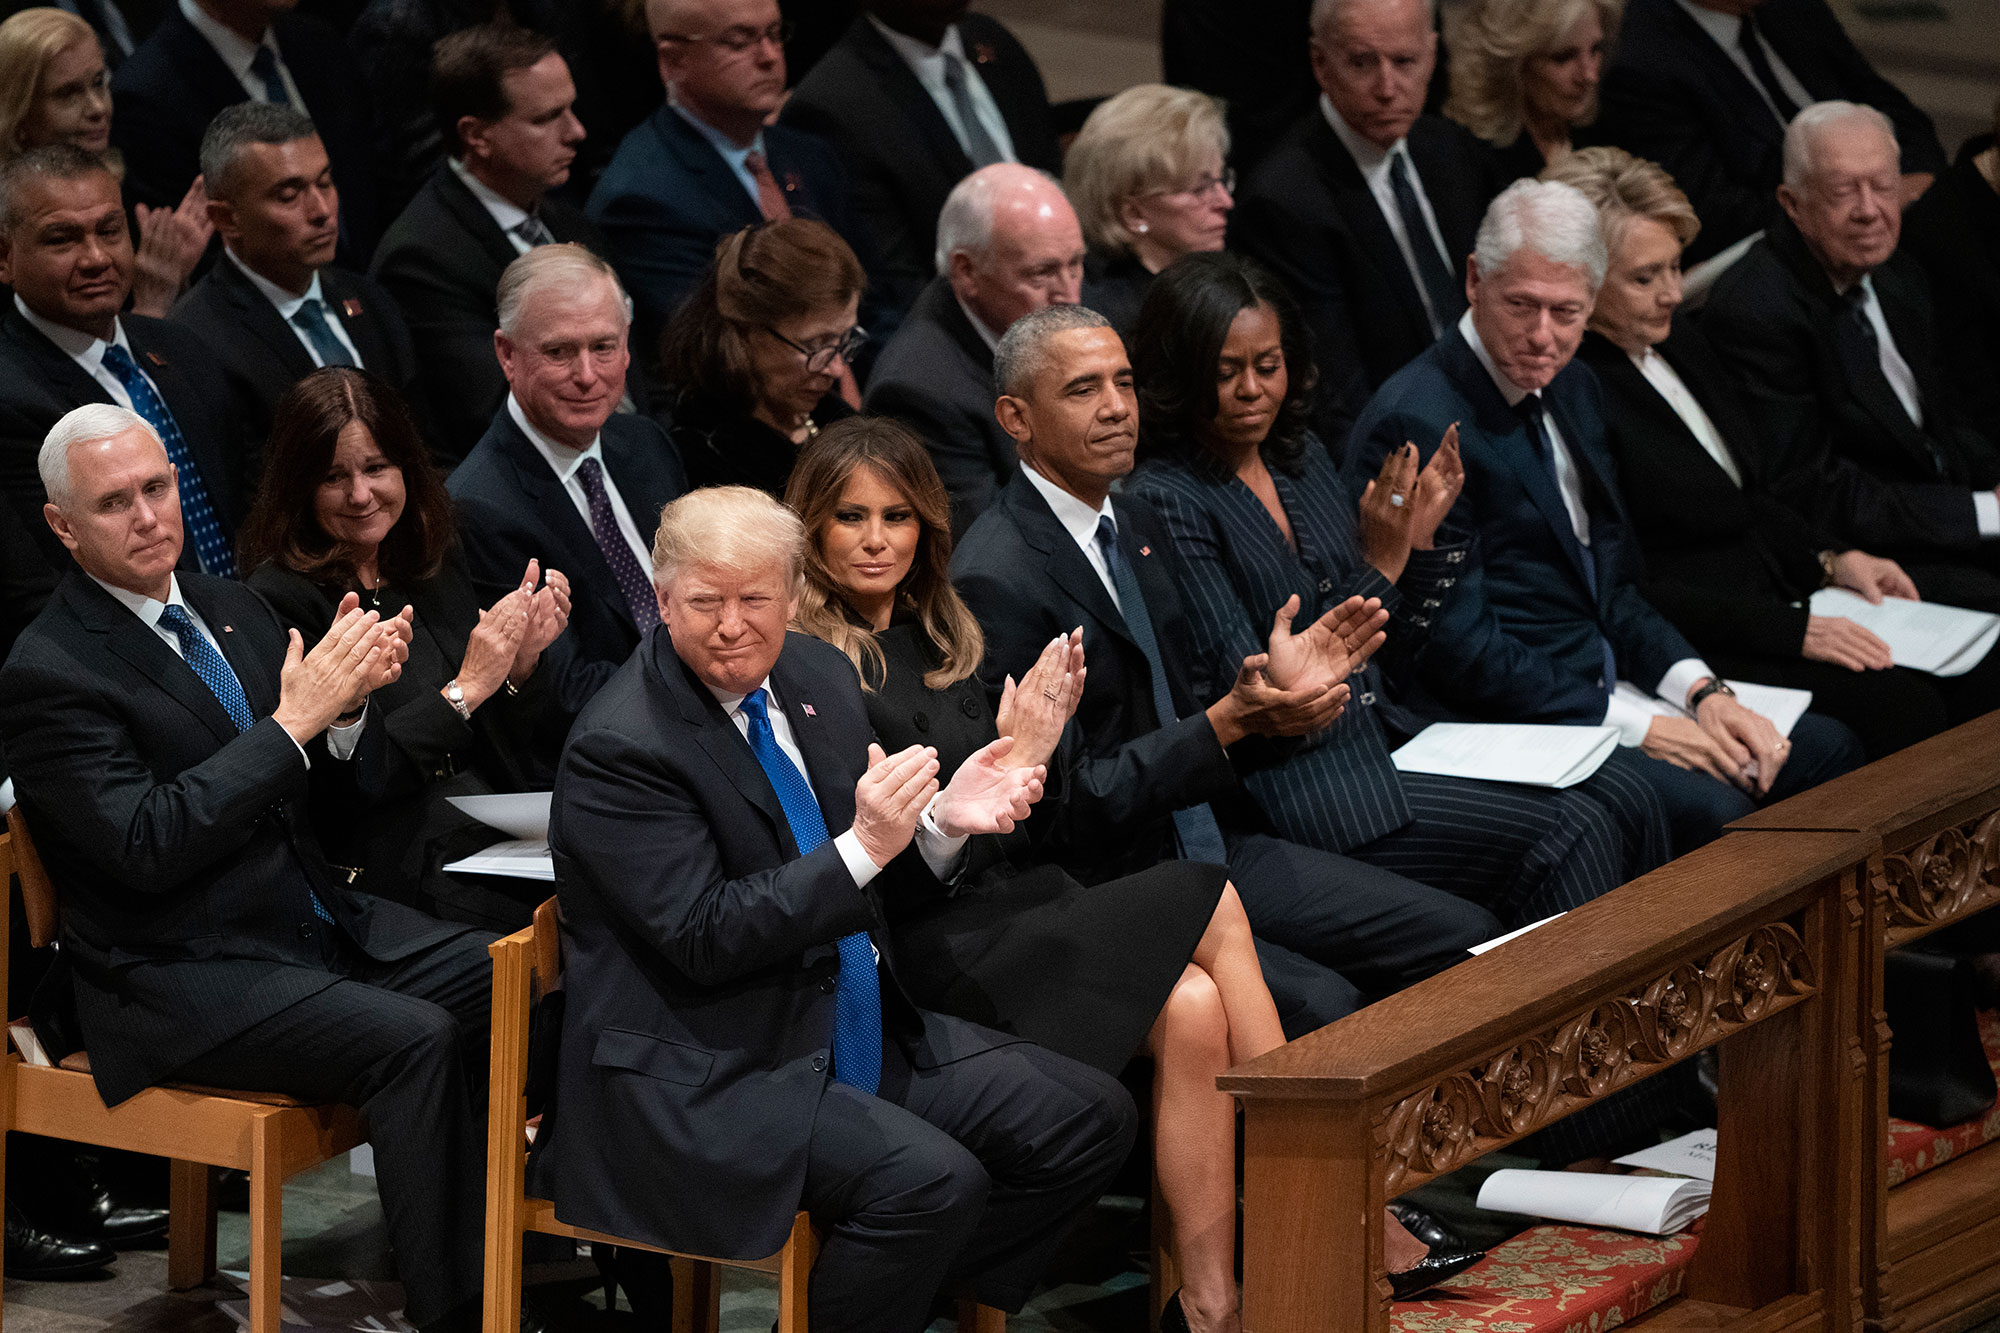 "<div class=""meta image-caption""><div class=""origin-logo origin-image none""><span>none</span></div><span class=""caption-text"">Current and former presidents and first ladies applaud during a State Funeral for former President George H.W. Bush at the National Cathedral, Wednesday, Dec. 5, 2018. (Carolyn Kaster/AP Photo)</span></div>"